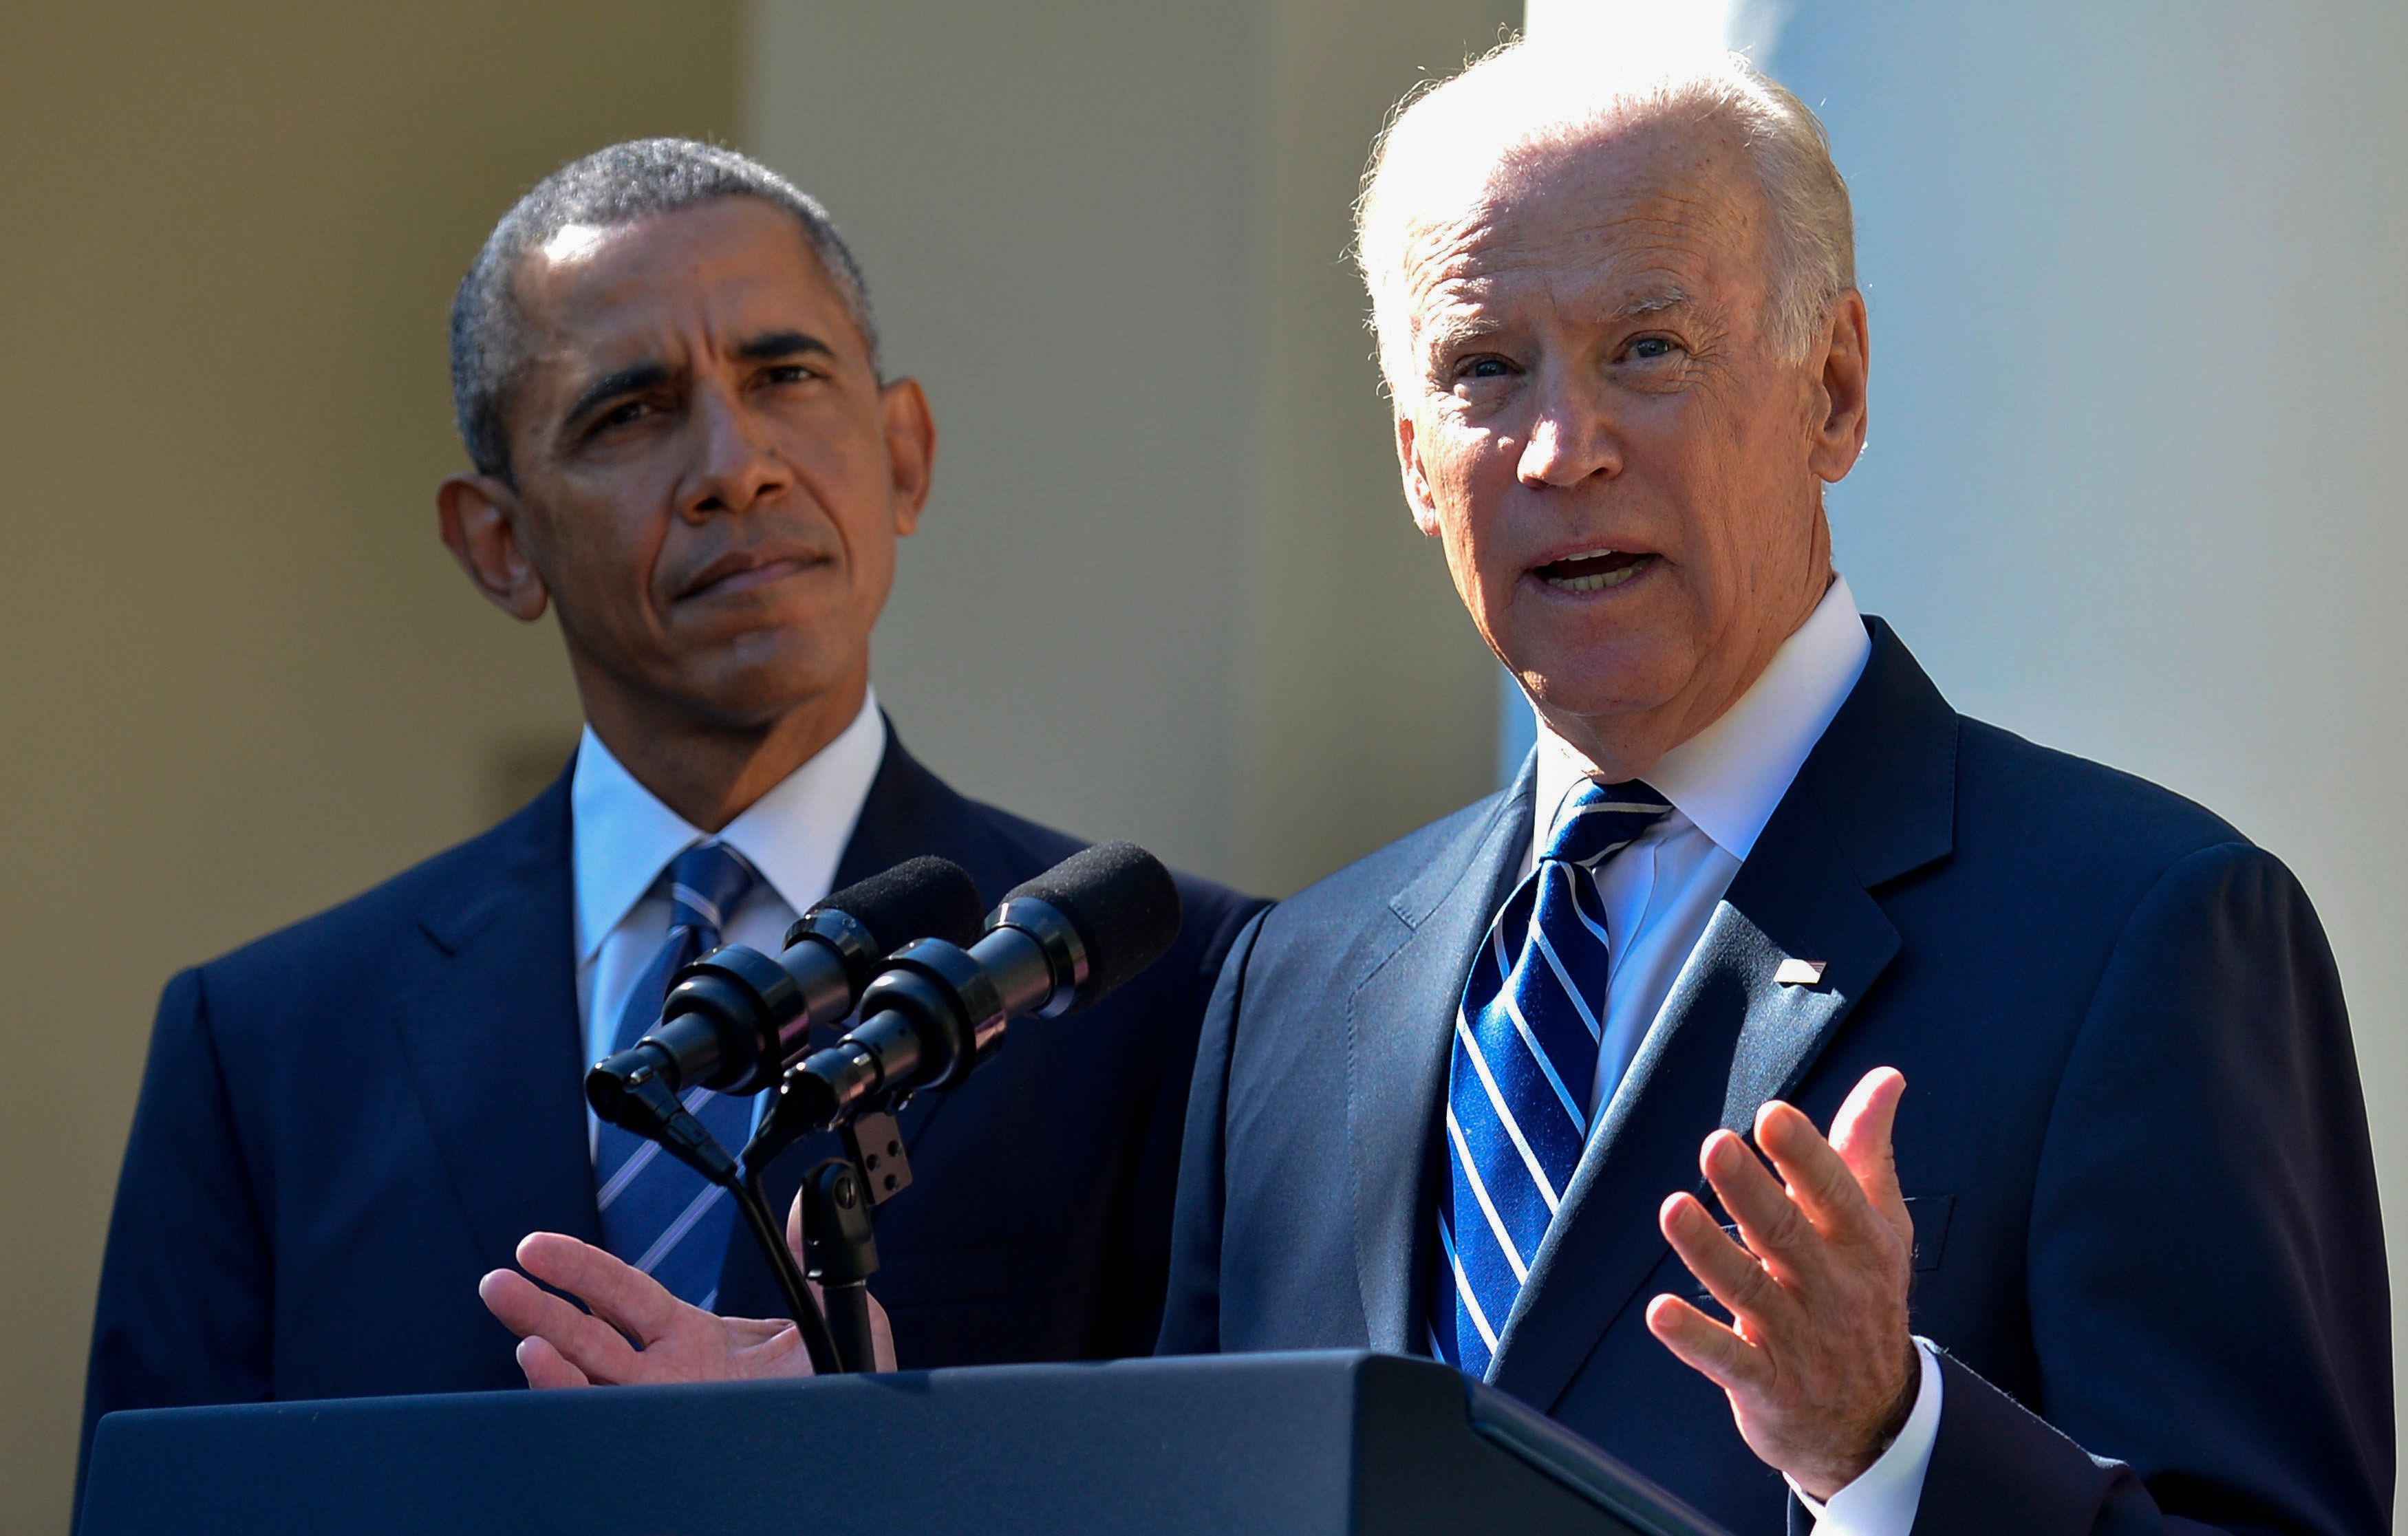 U.S. Vice President Joseph 'Joe' Biden, right, speaks in the Rose Garden of the White House with U.S. President Barack Obama in Washington, D.C., U.S., on Wednesday, Oct. 21, 2015. Vice President Biden won't seek the Democratic presidential nomination in 2016, ending months of deliberation and speculation and clearing the path for Hillary Clinton. Photographer: Mike Theiler/Pool via Bloomberg